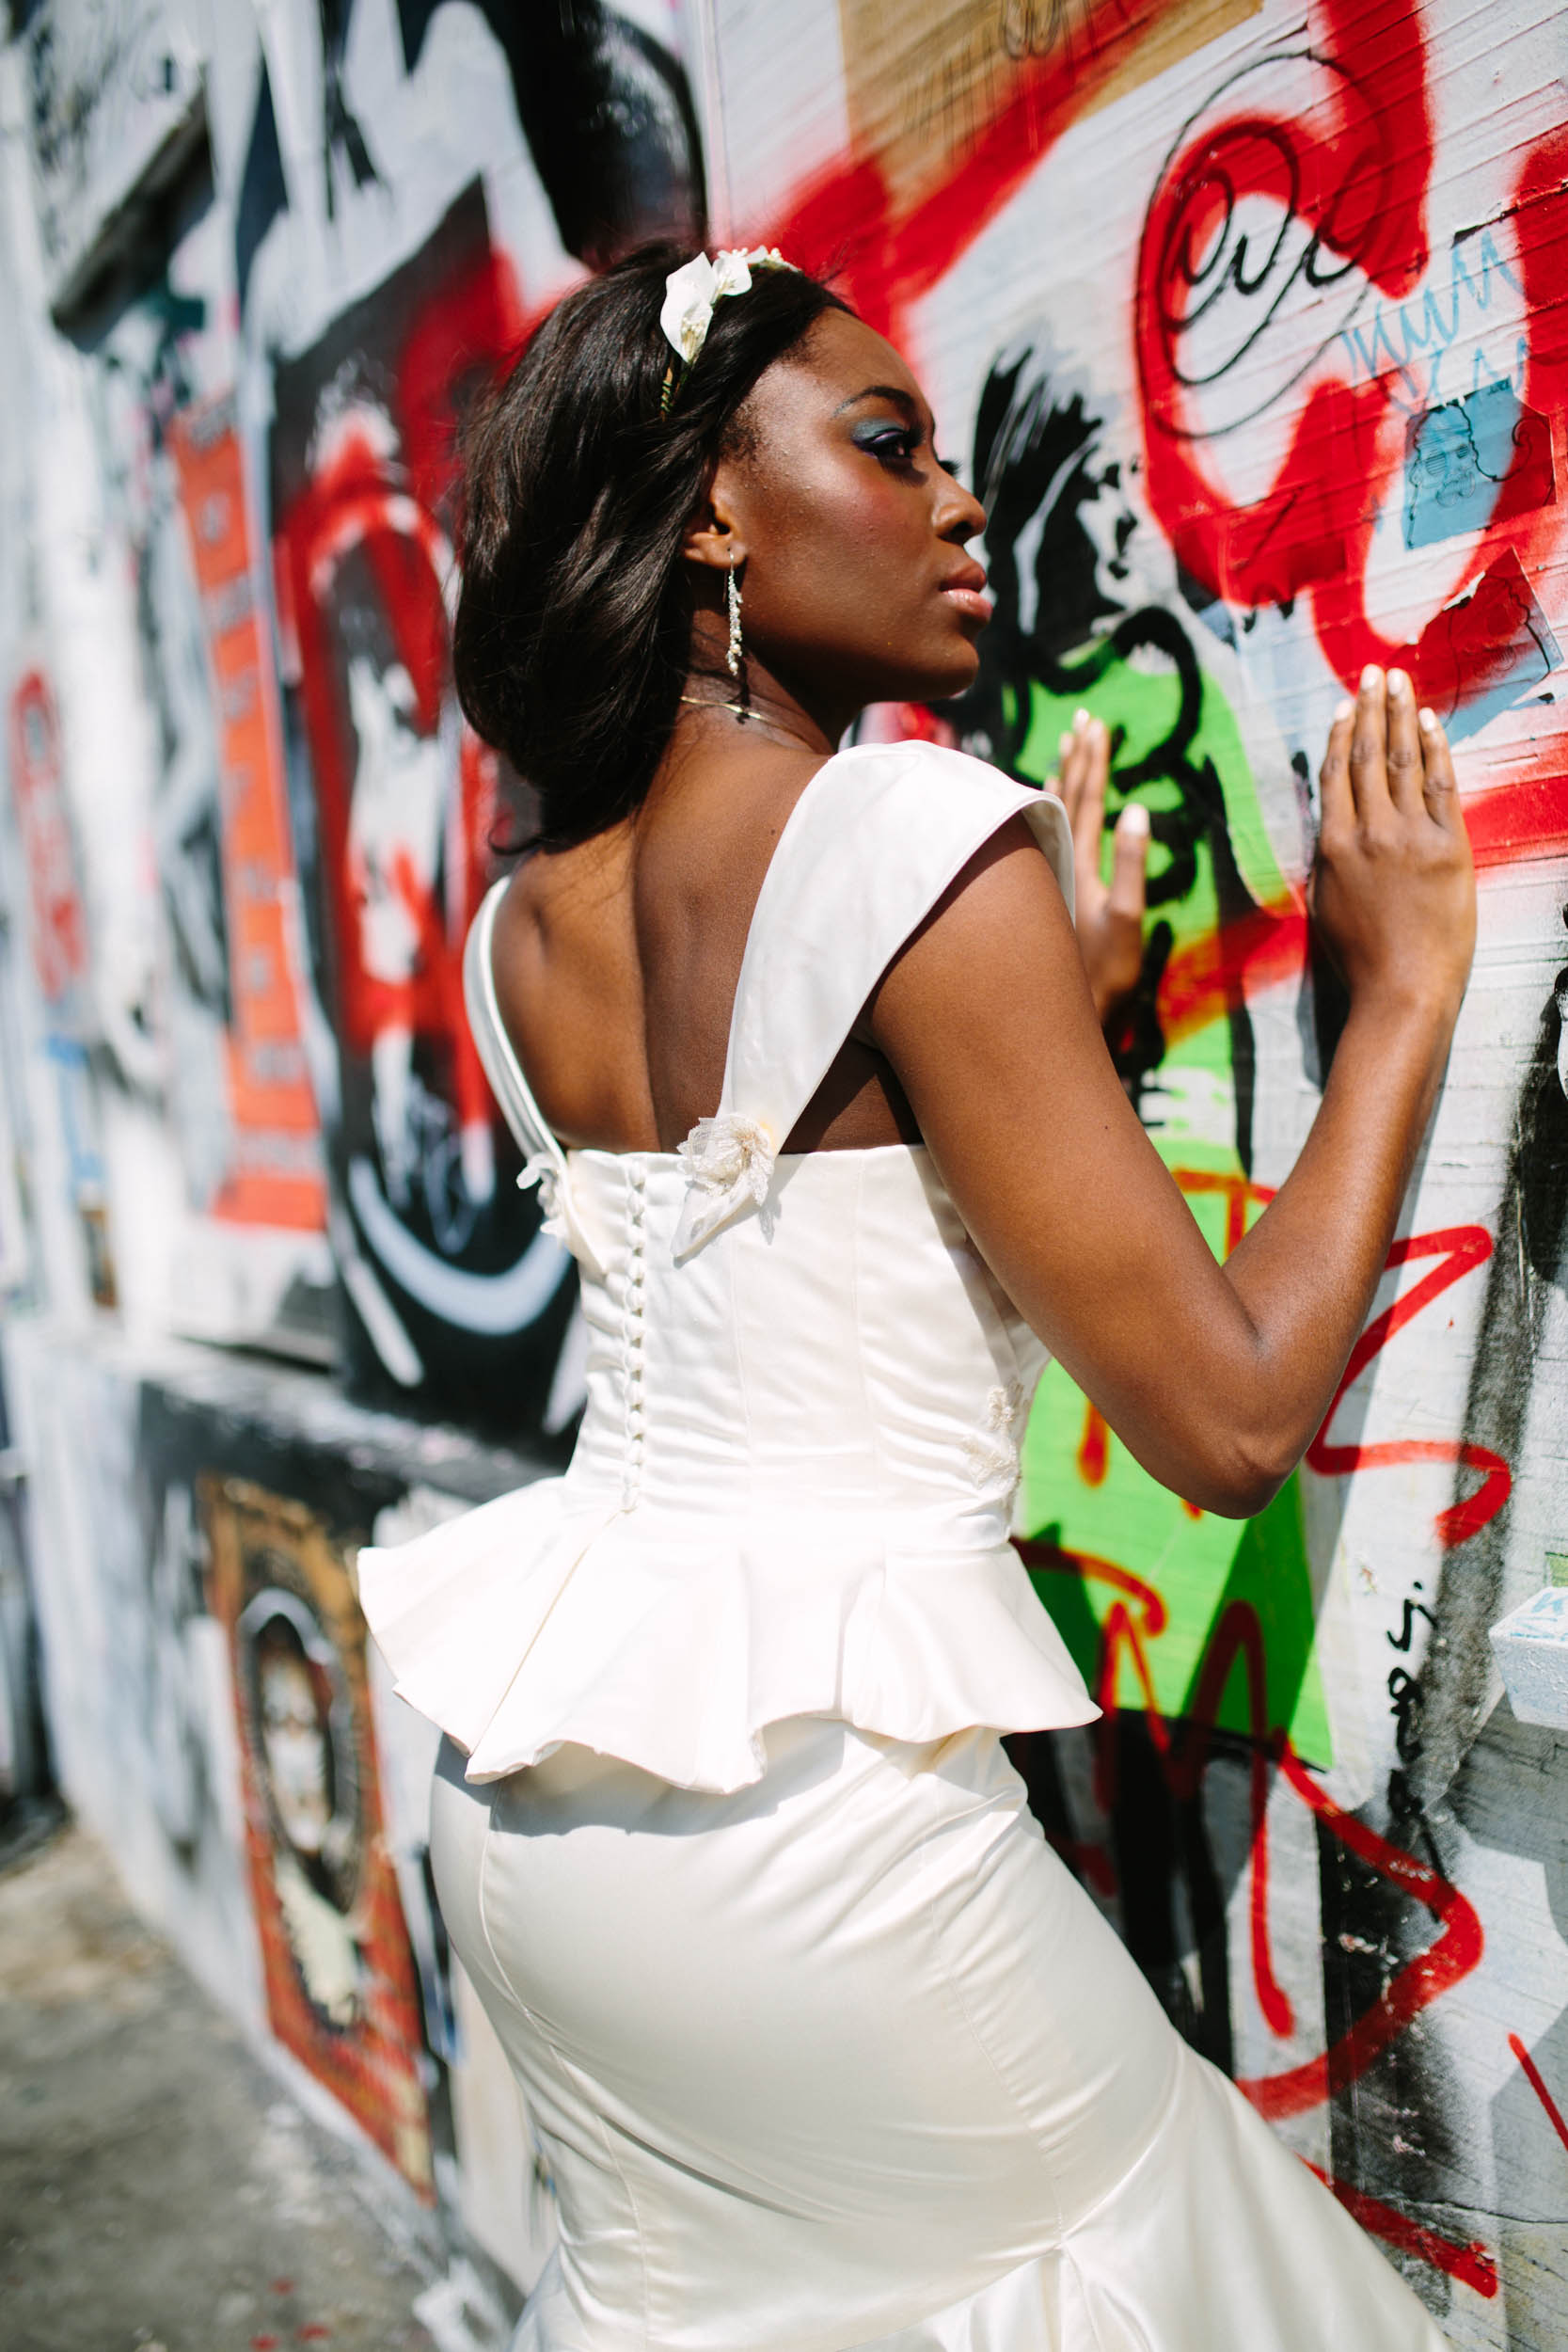 city bride - burlesque wedding - alternative wedding dress - unique wedding dress - figure flattering wedding dress - peplum wedding dress - bride against graffiti wall